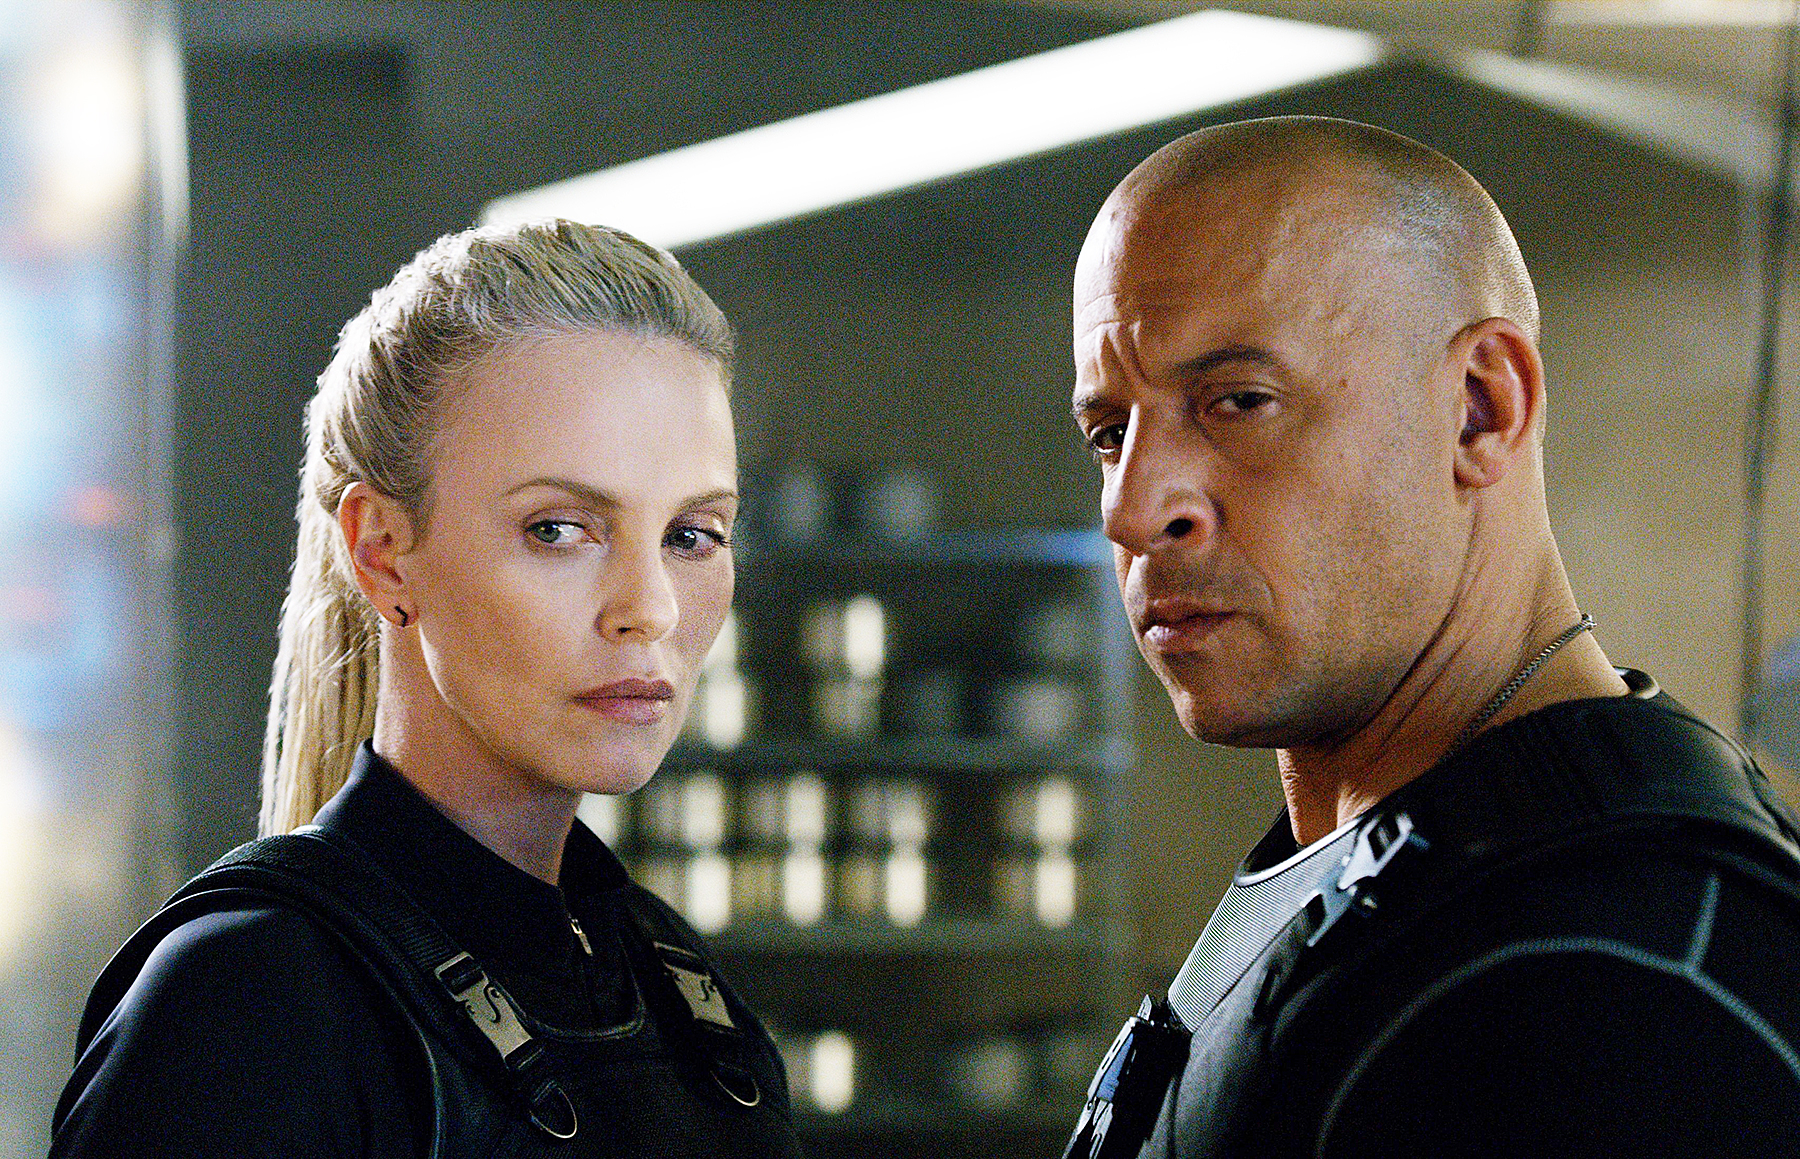 Charlize Theron Vin Diesel Fate of the Furious